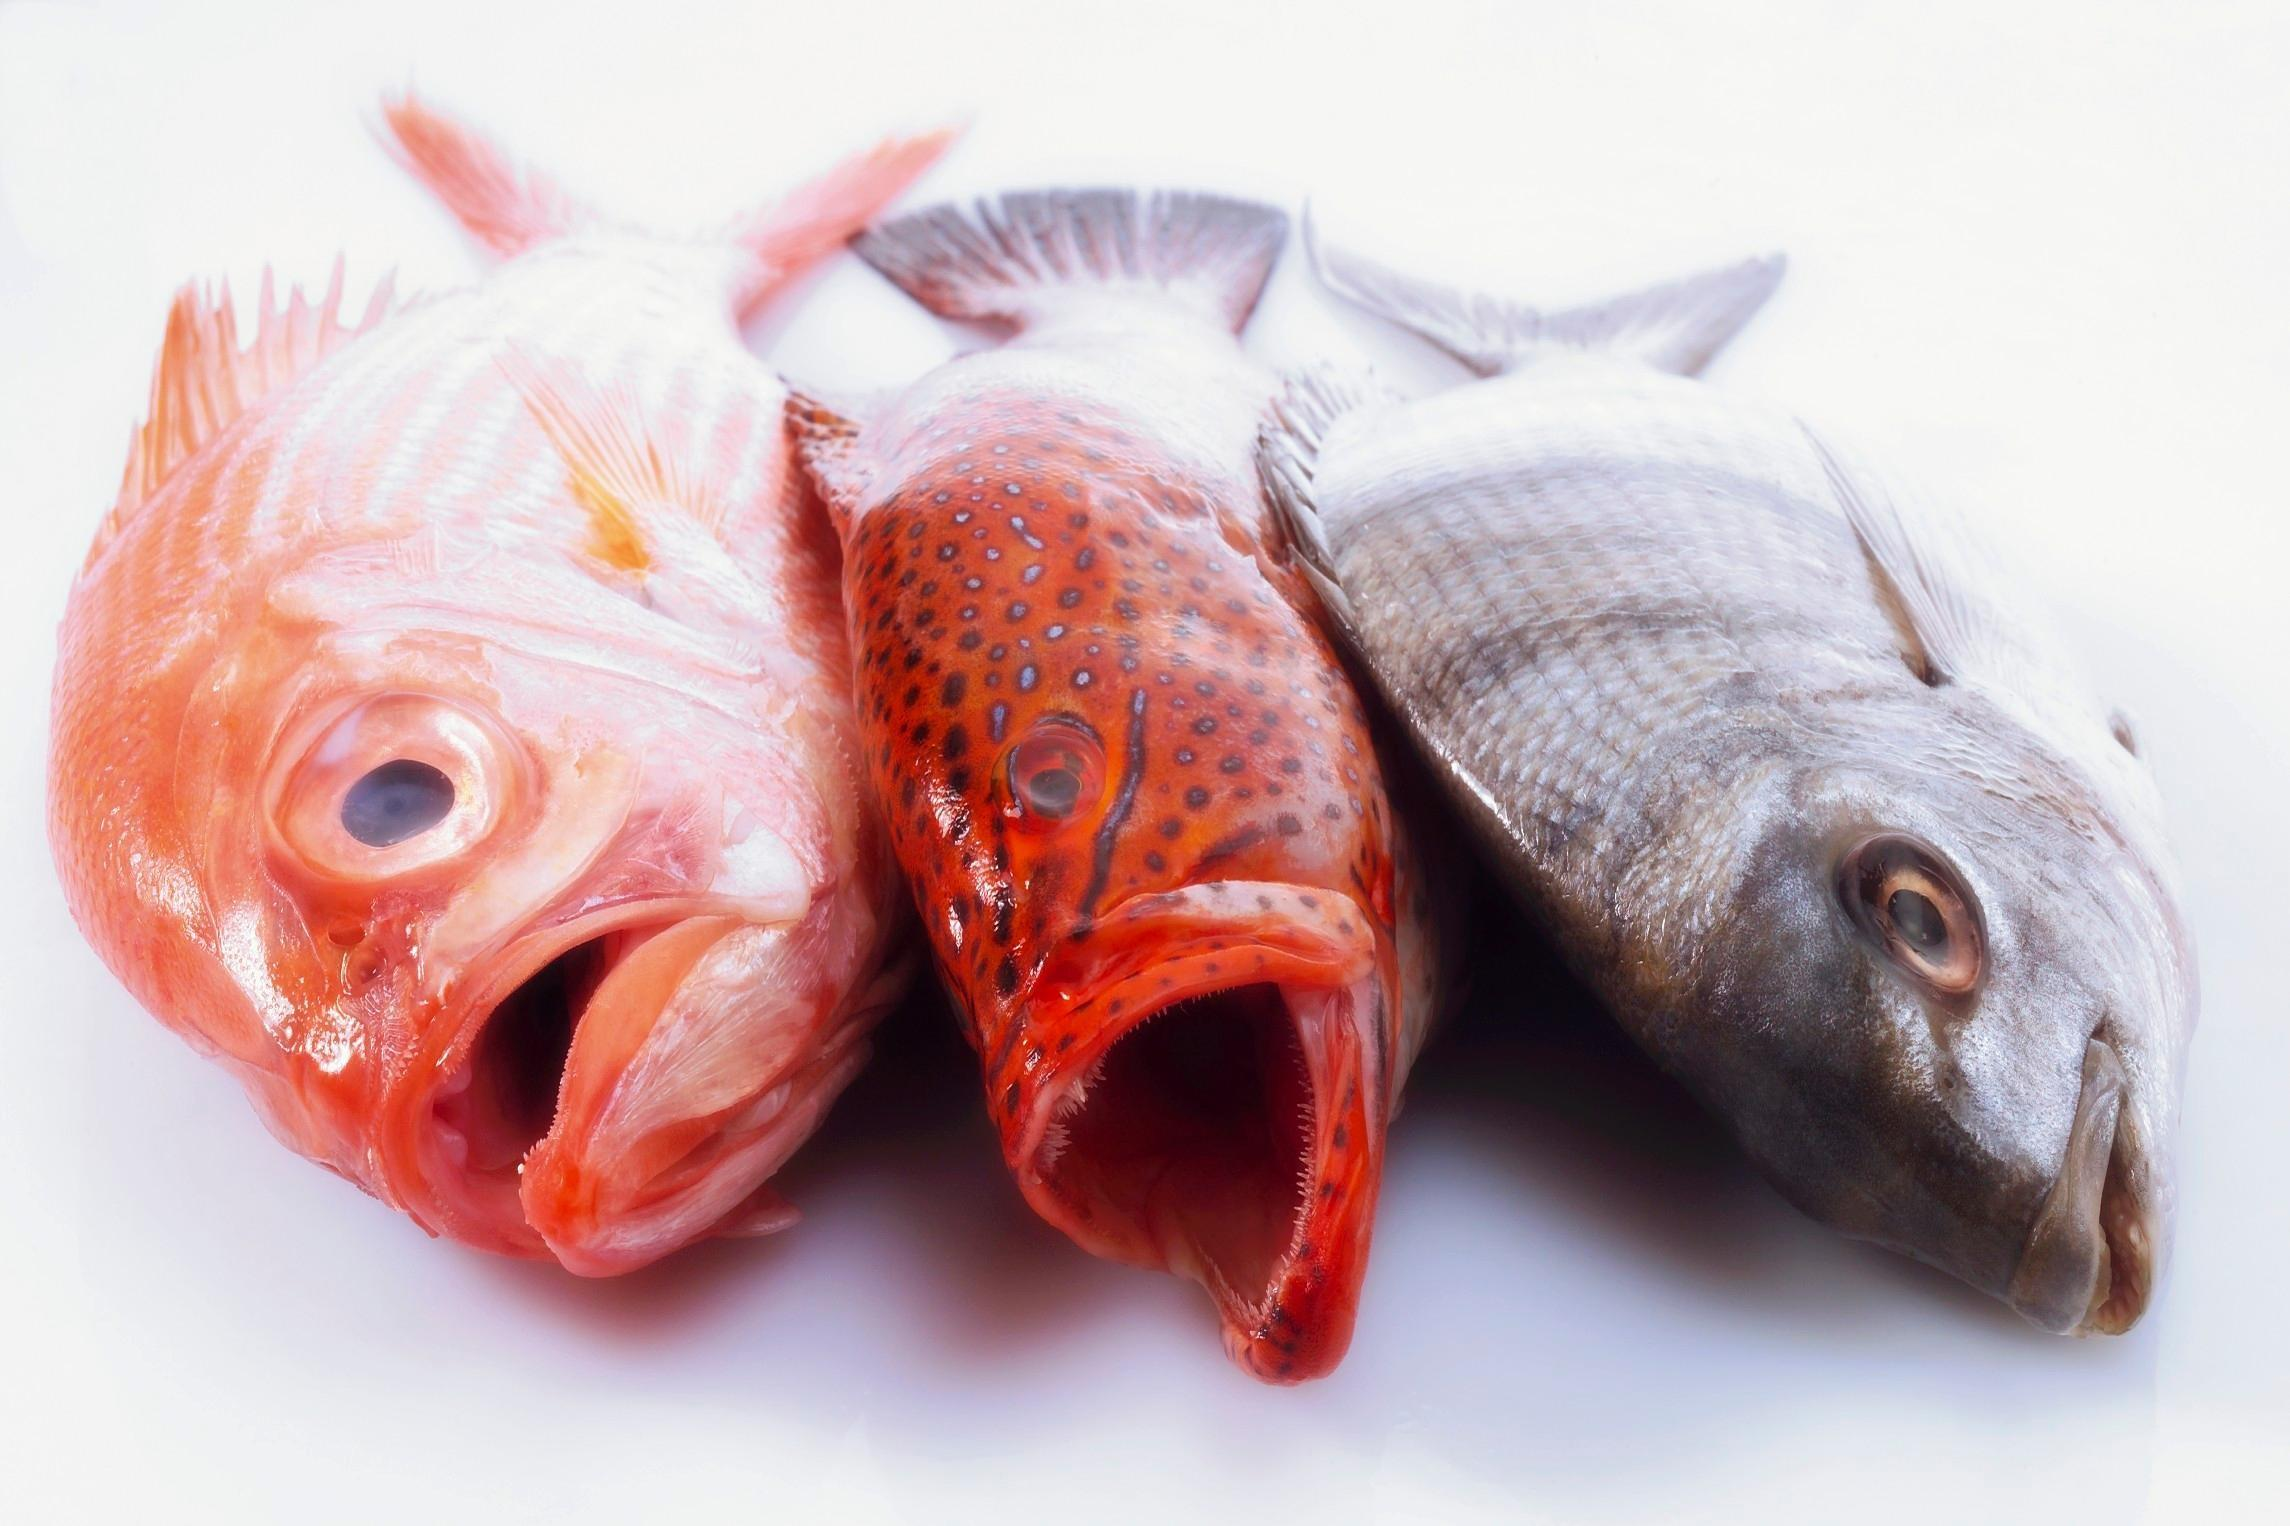 You can buy good fish at the supermarket for Fish to buy